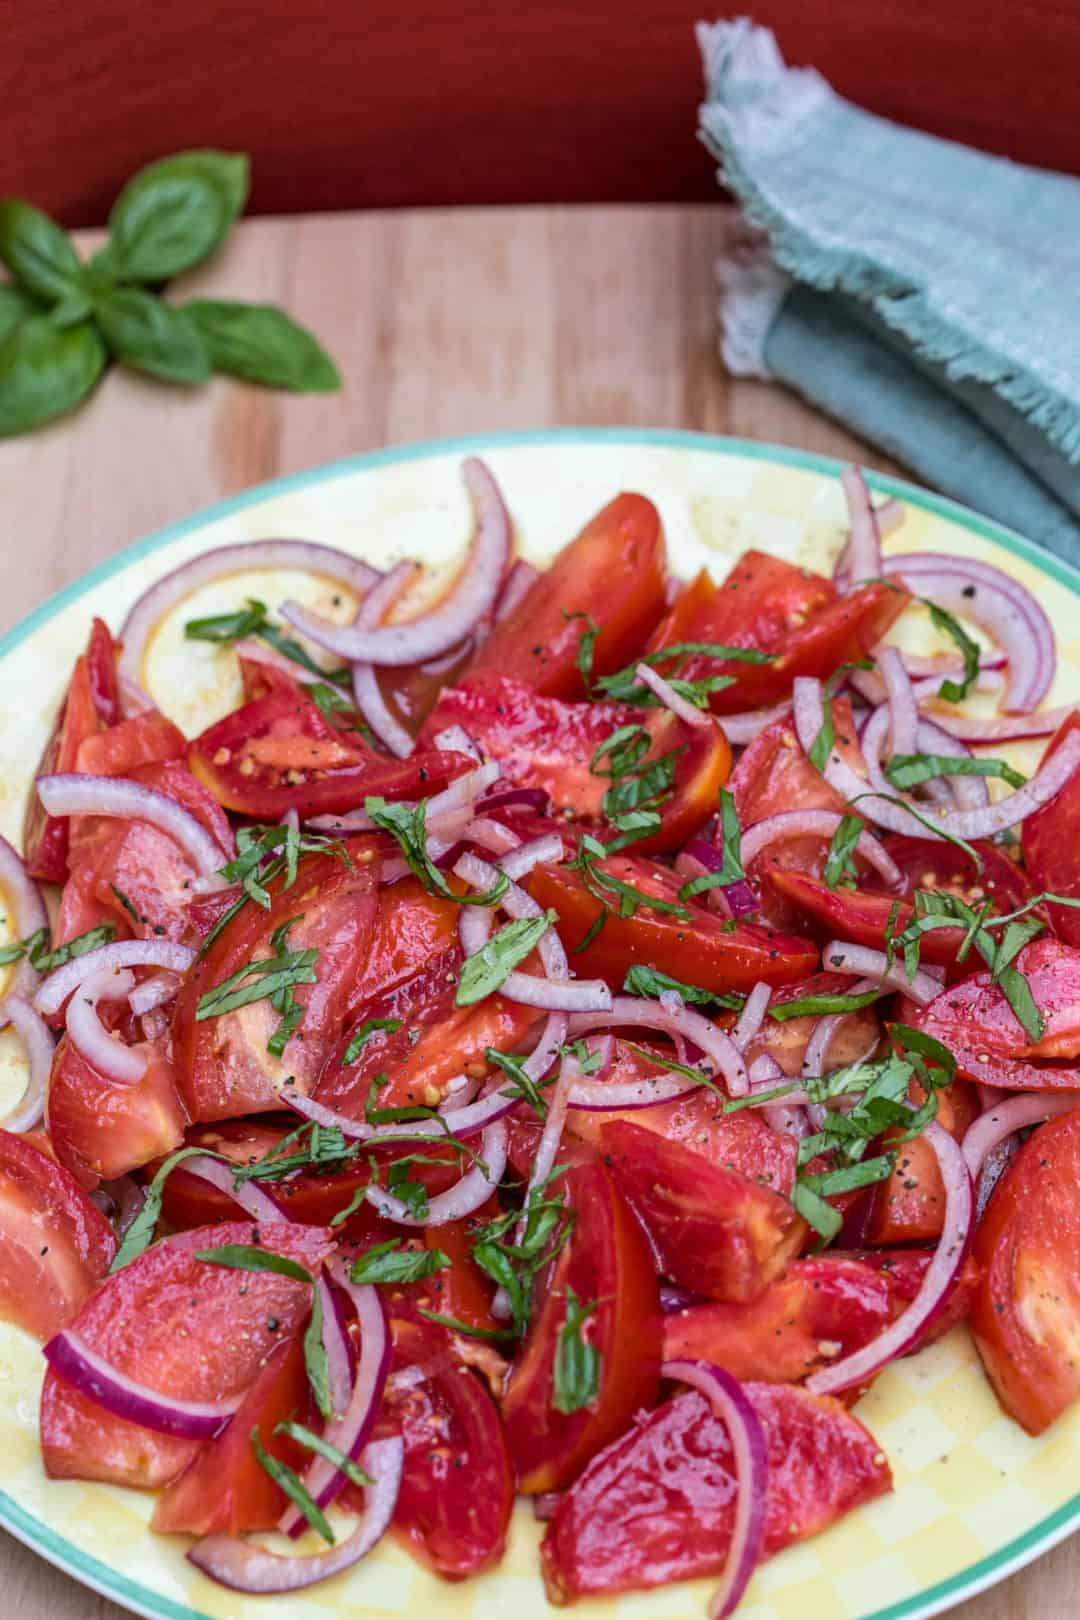 platter of tomato salad with red onions and basil with green napkin